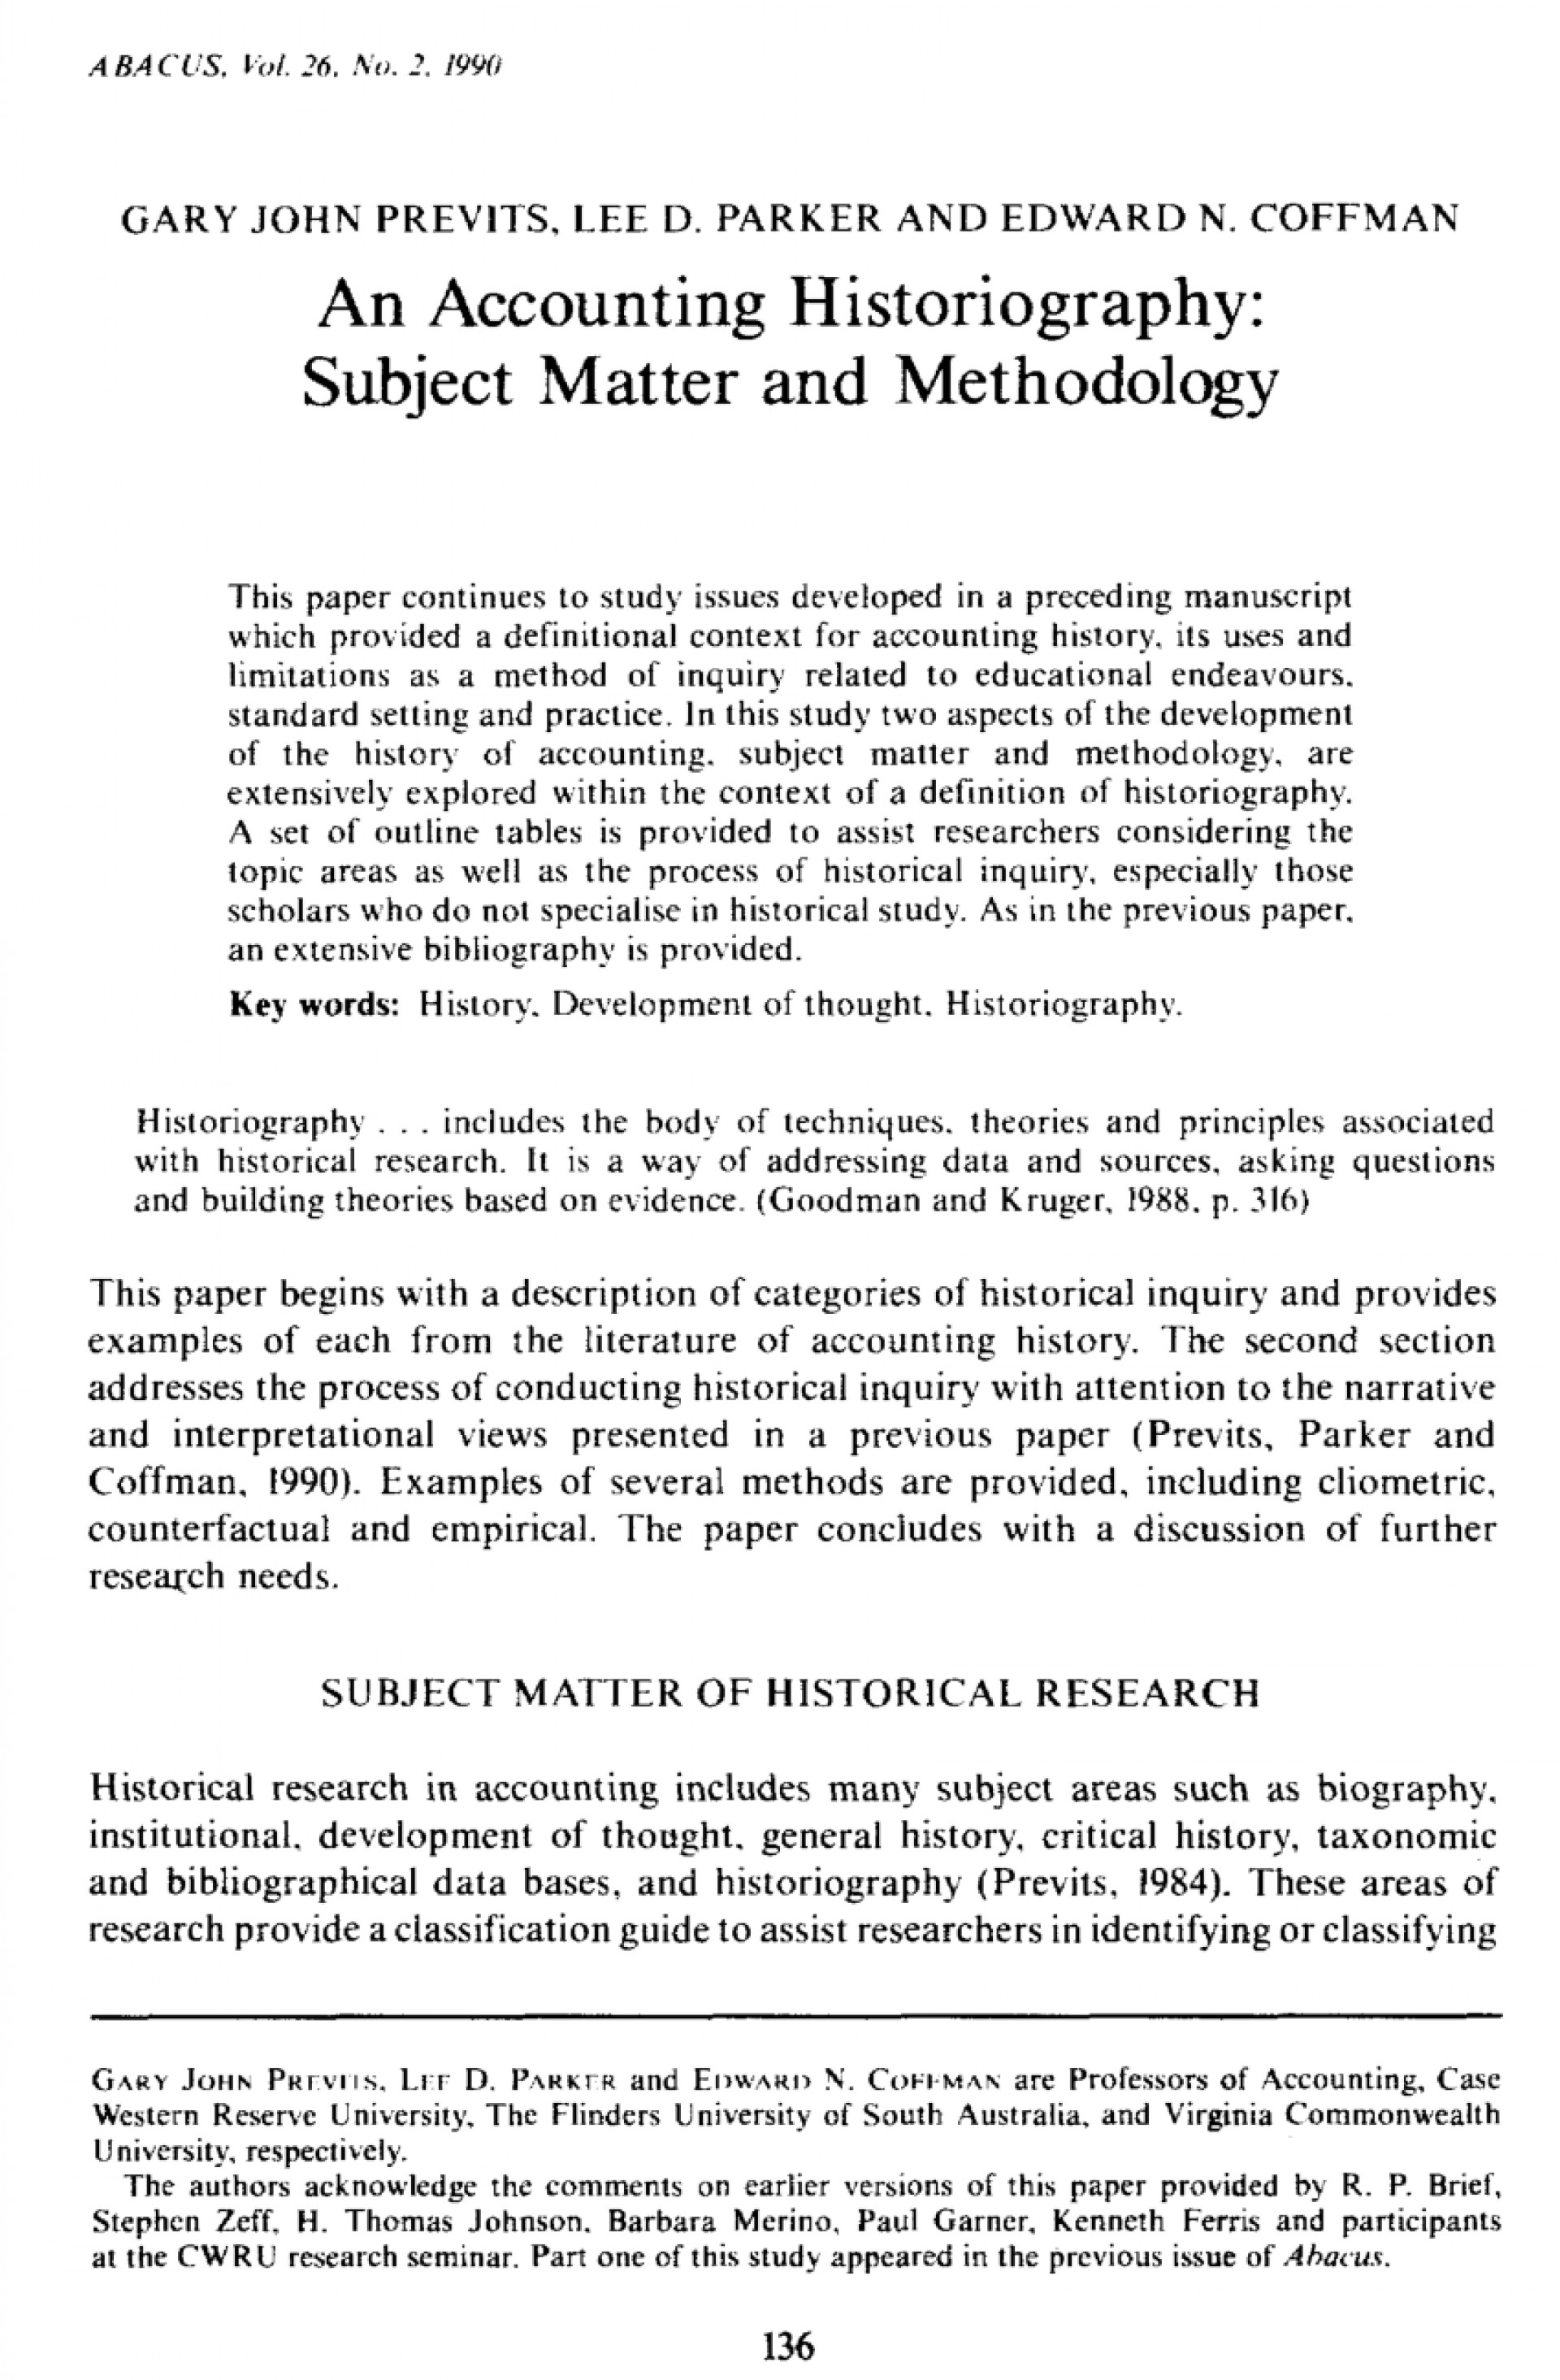 012 Art History Research Paper Example Staggering Outline 1920